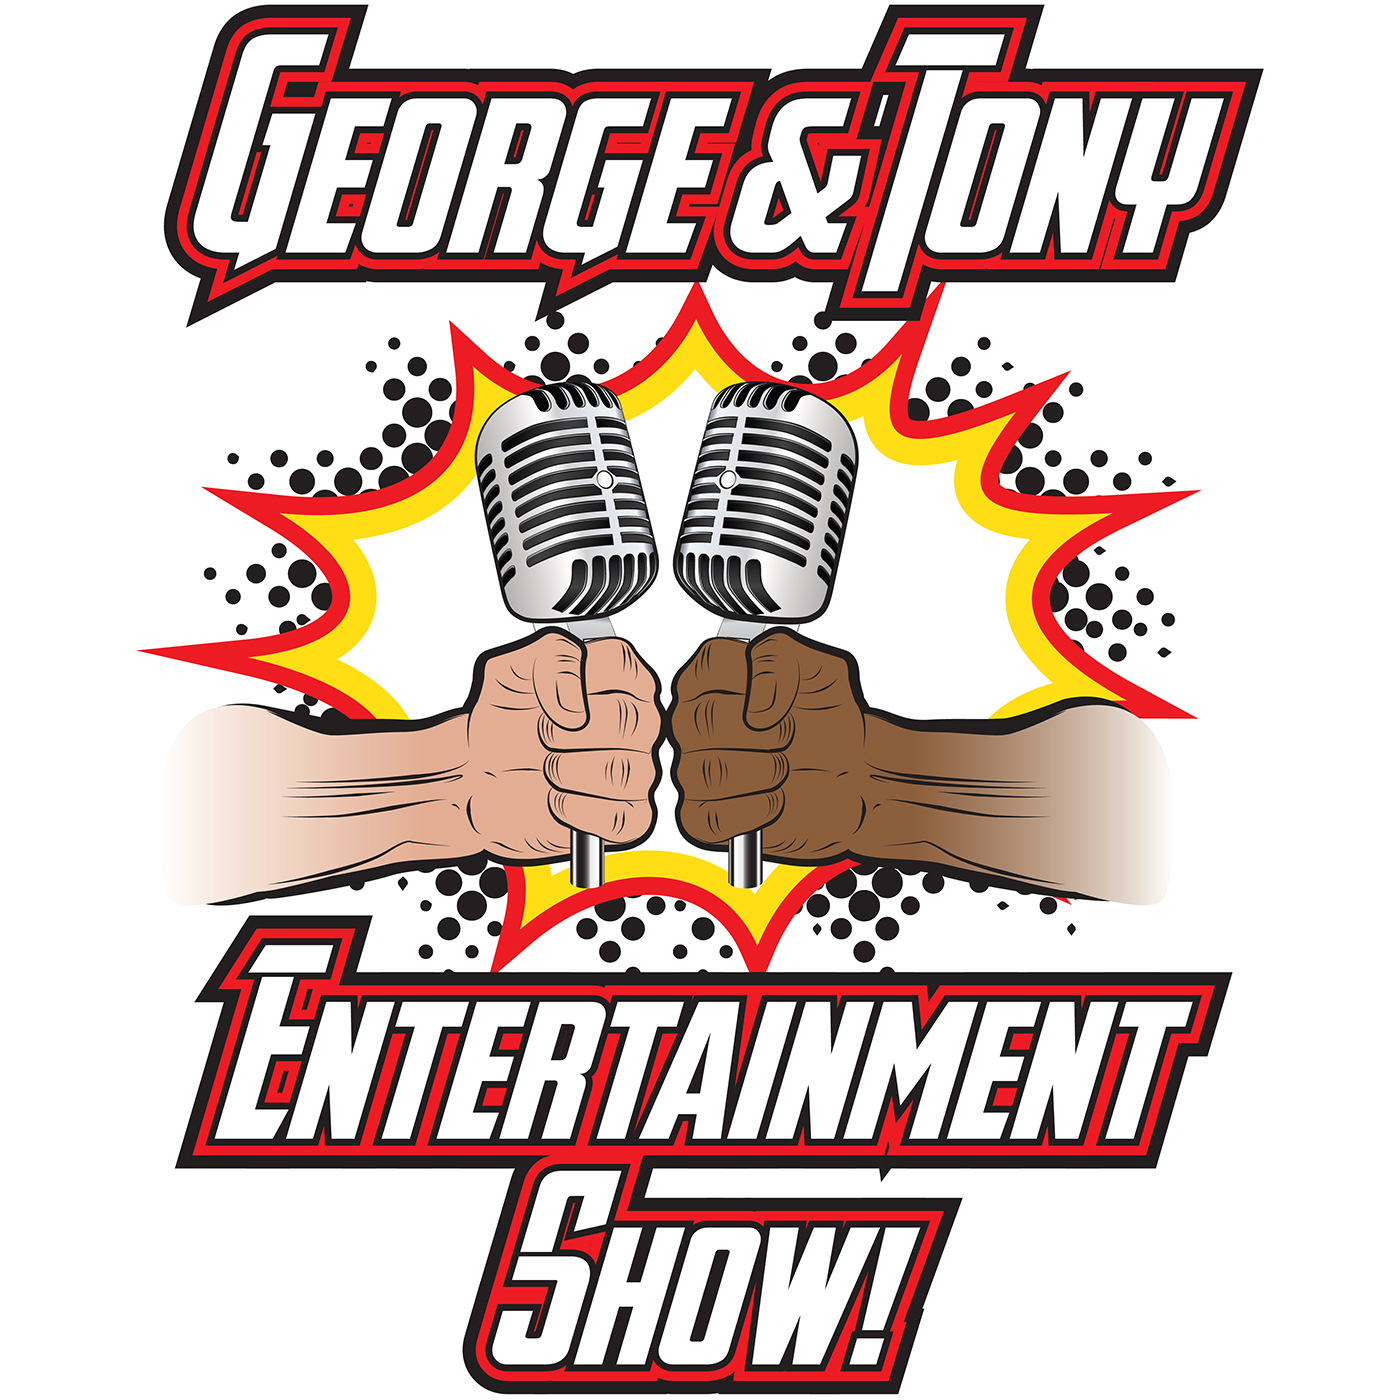 George and Tony Entertainment Show #16